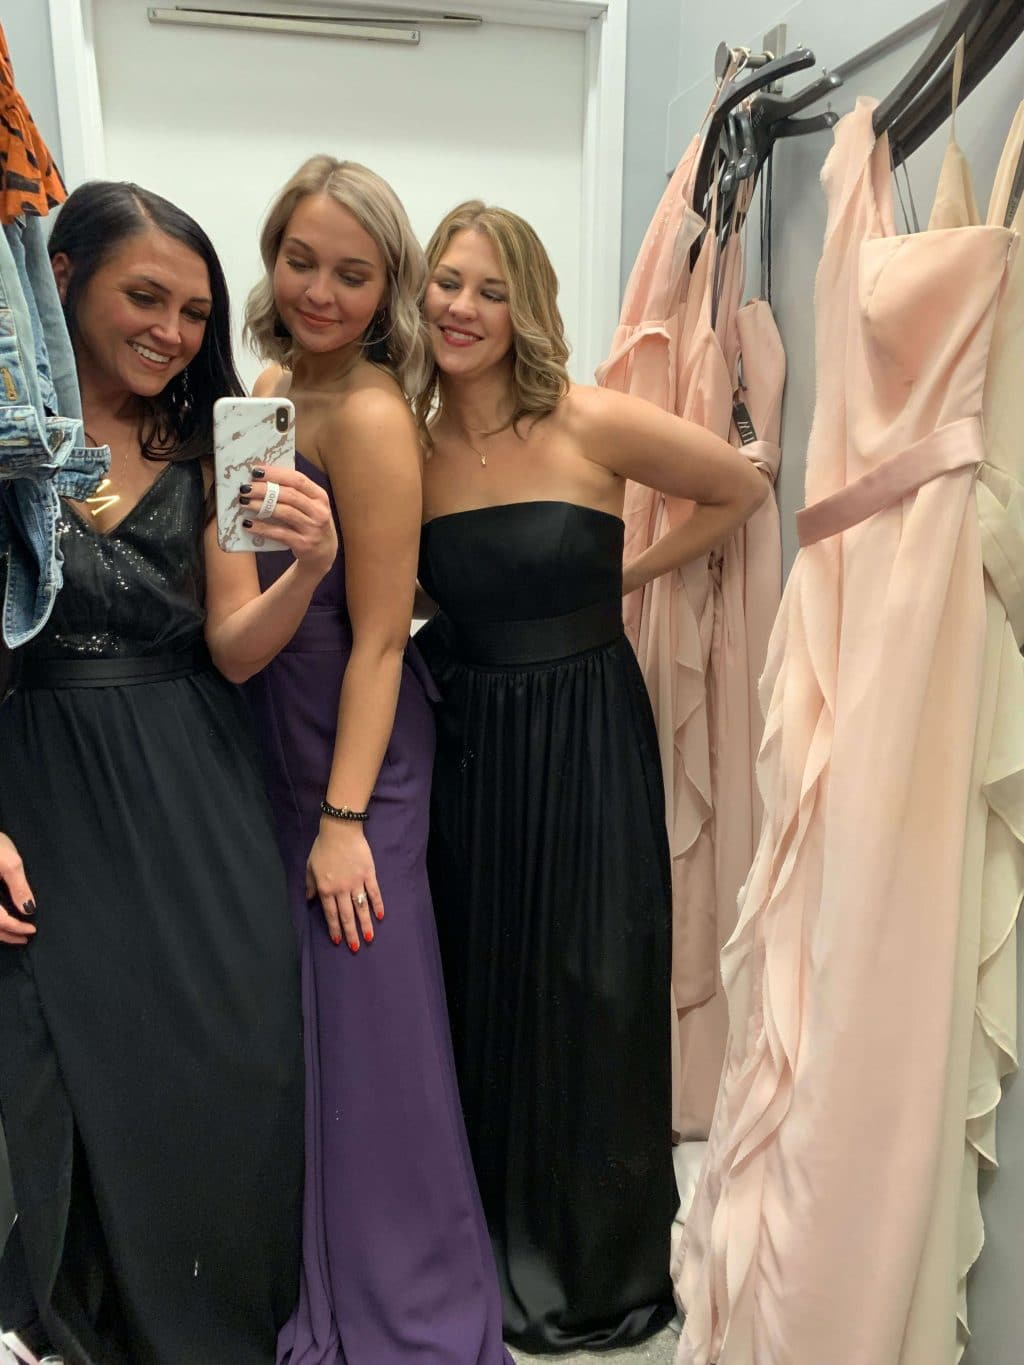 Wedding Dress Shopping, Sisters, Bridesmaids Dresses, Stilettos and Diapers